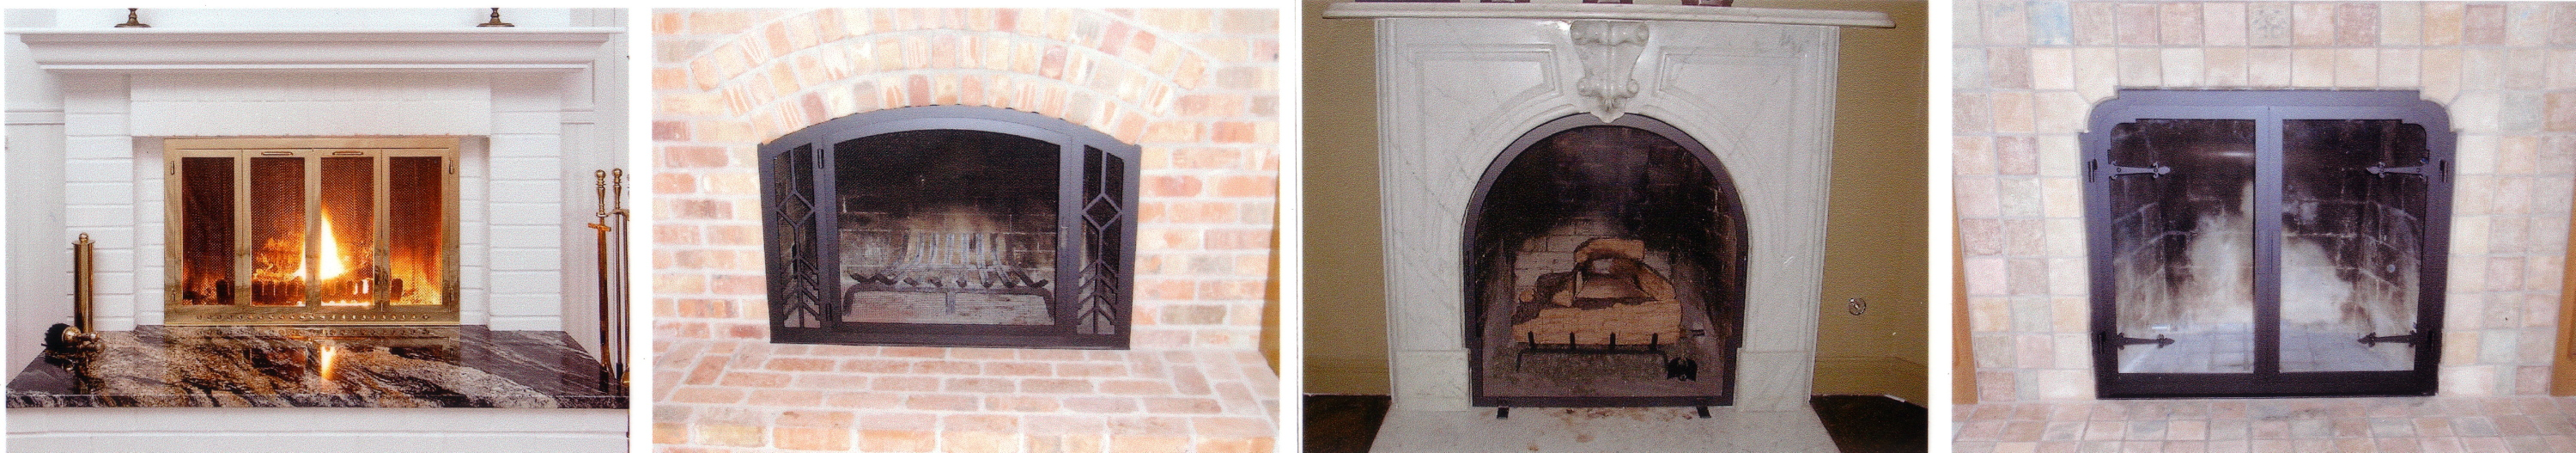 armada doors in glass forged specialties milwaukee forge fireplace iron design for masonry